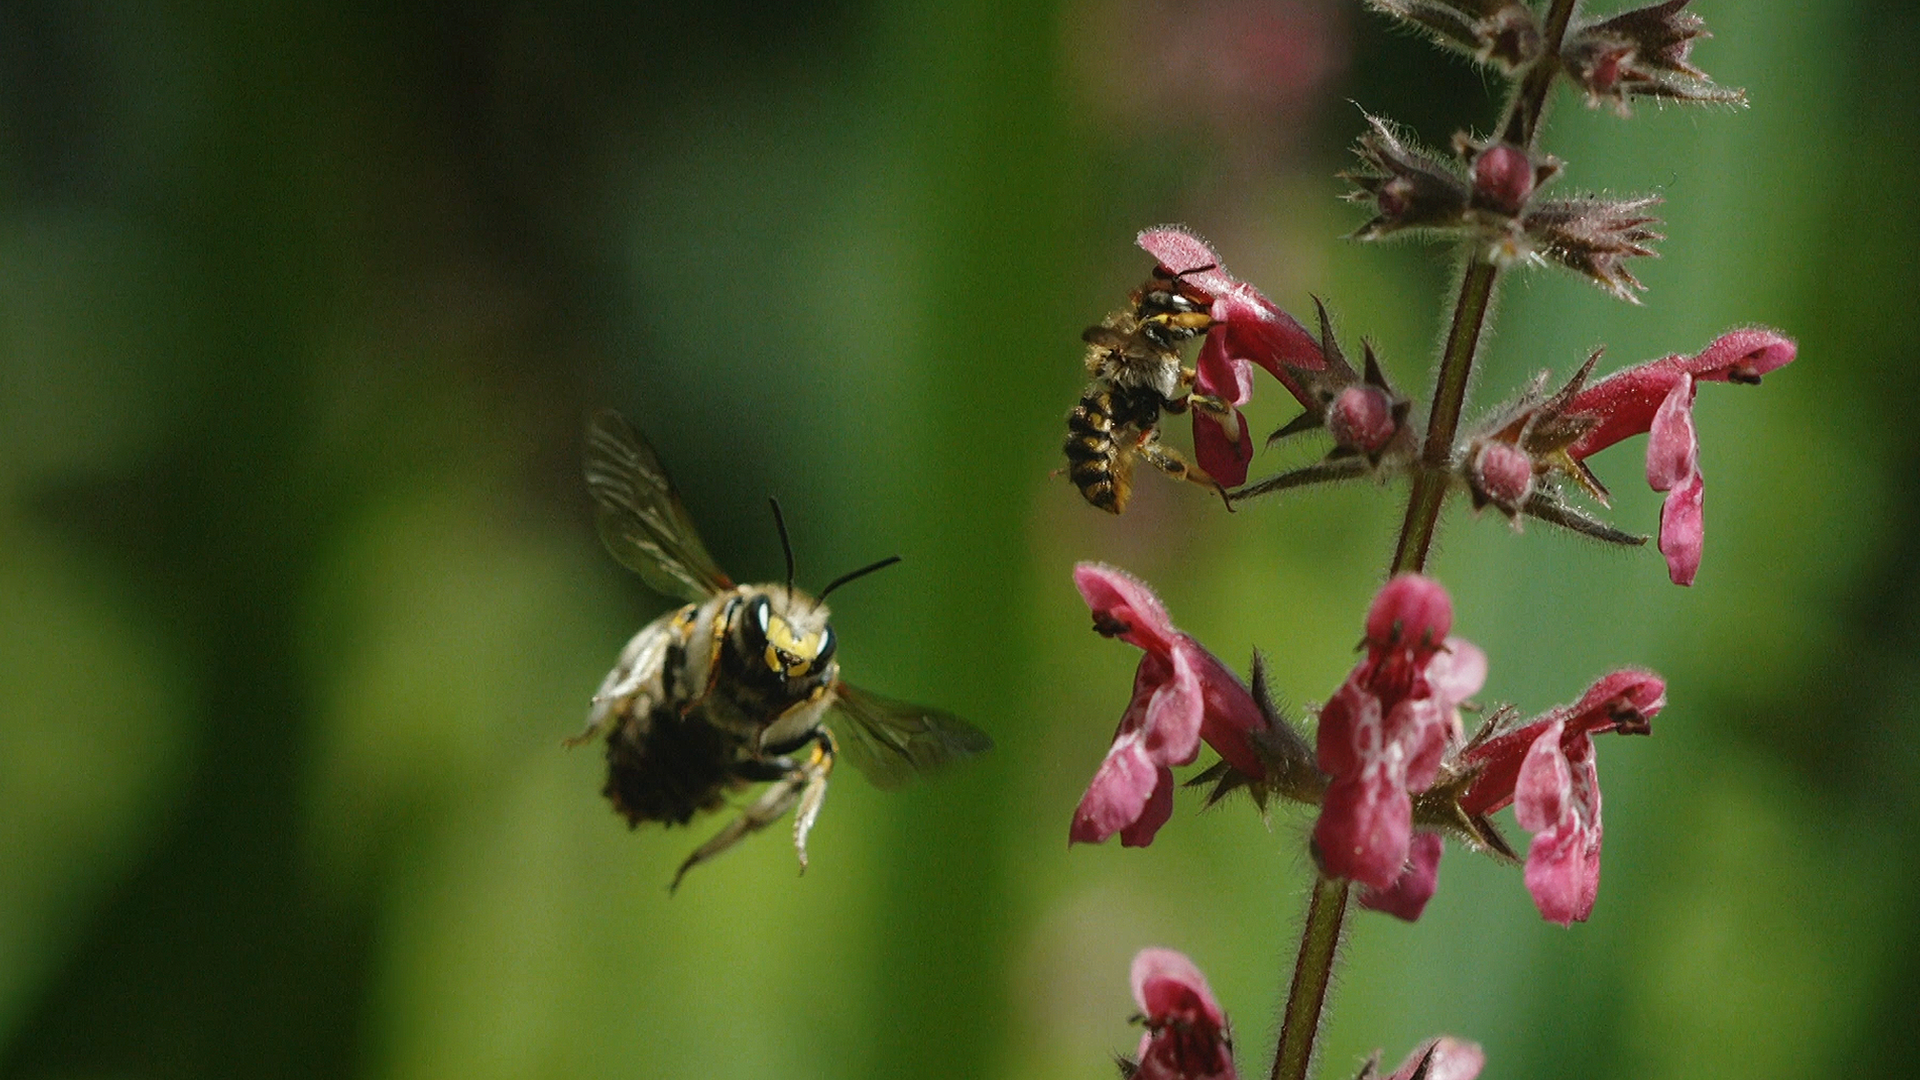 Best-bets for Oct. 20: great bees, troubled humans